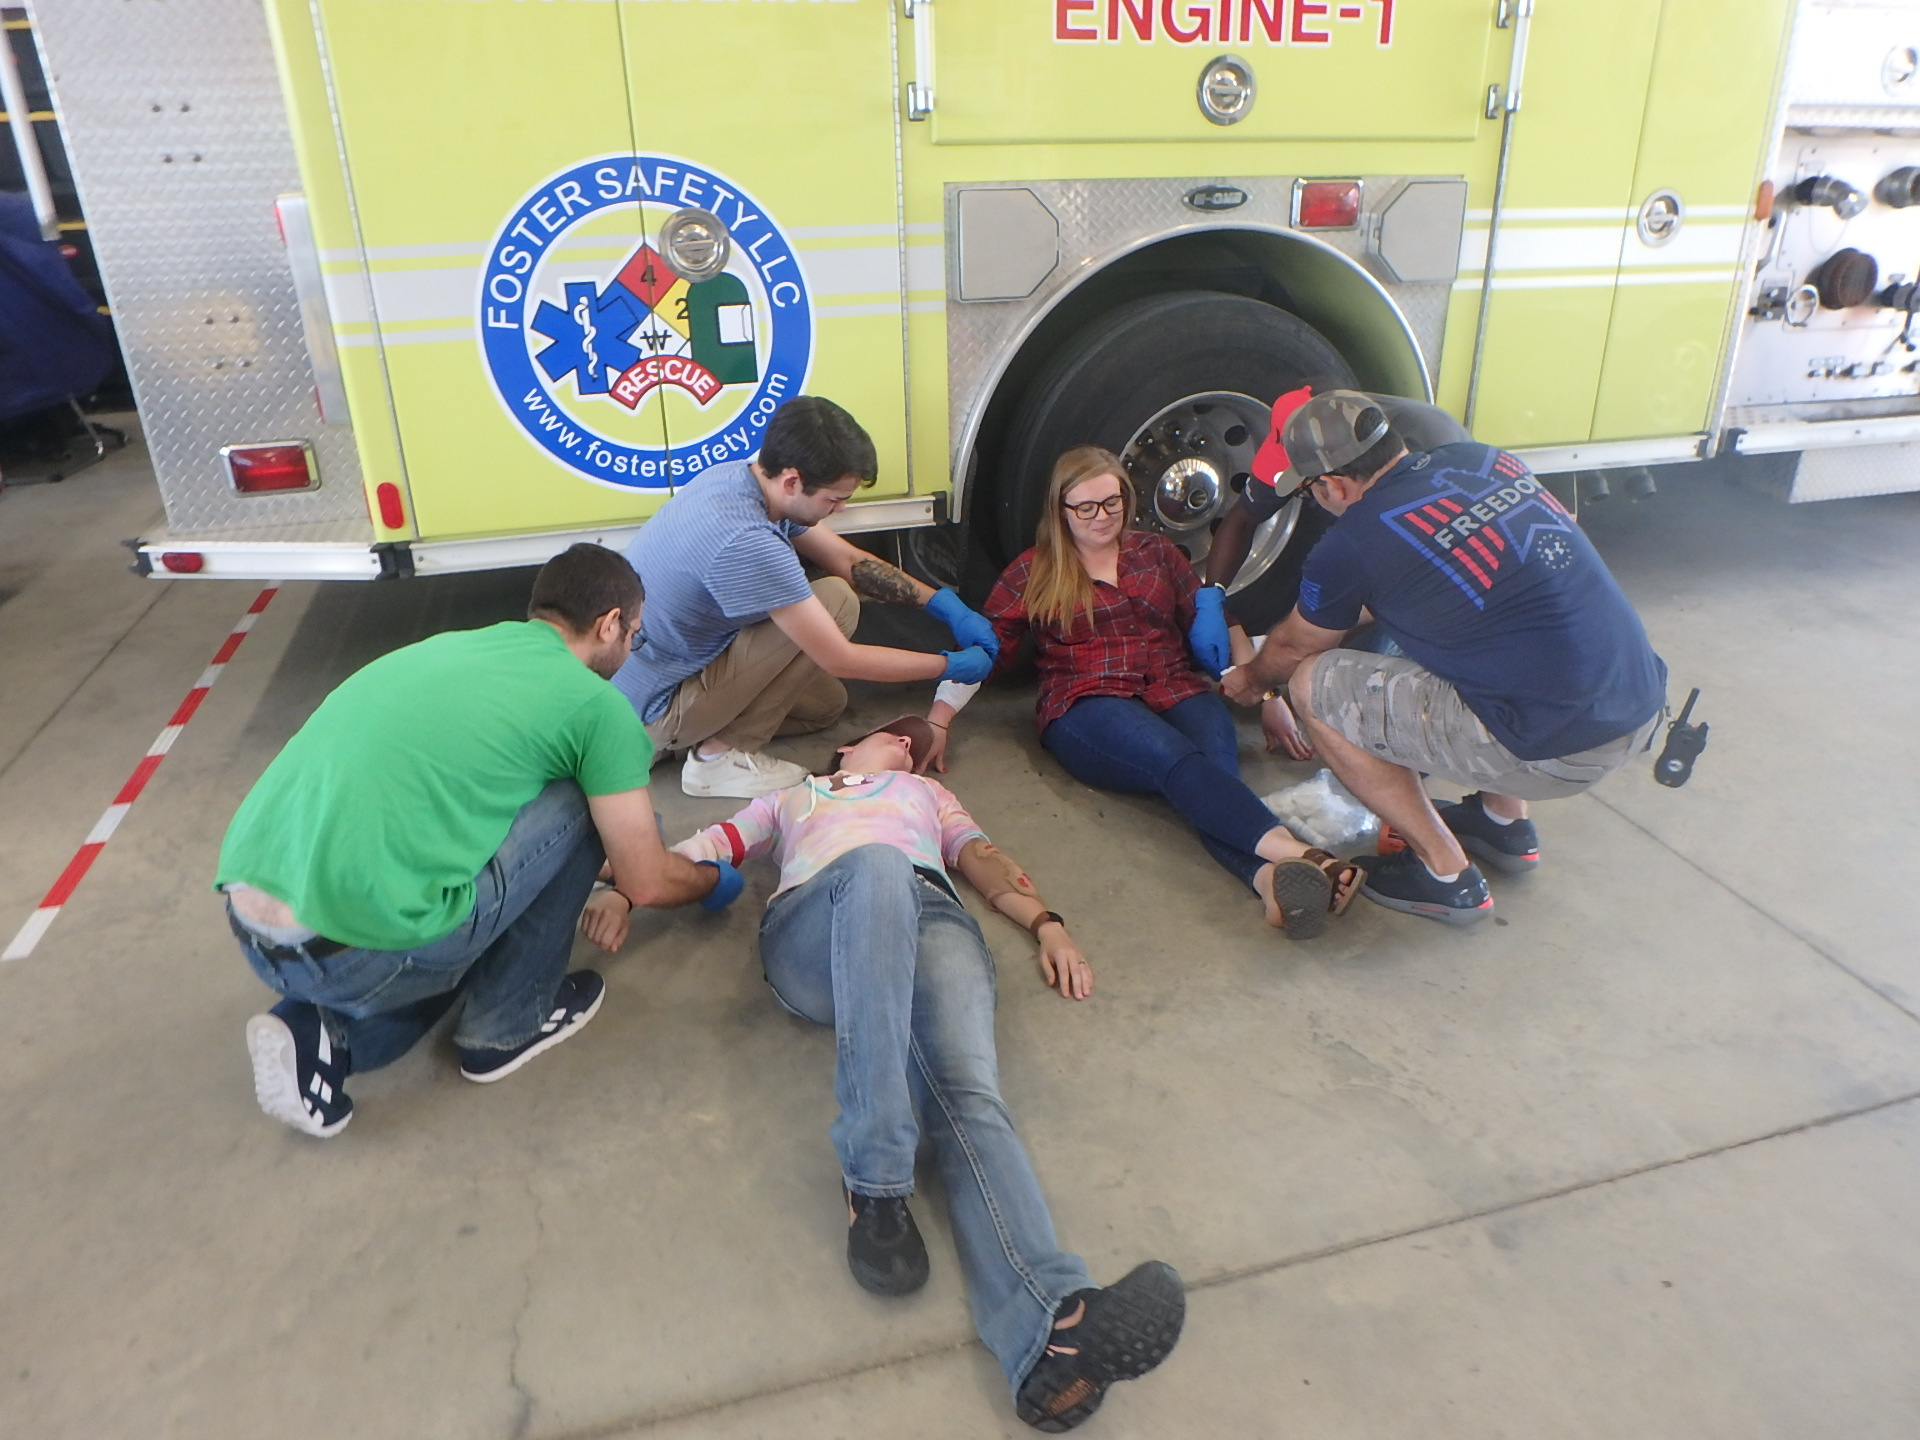 emergency medical responder course, foster safety, beaumont, texas